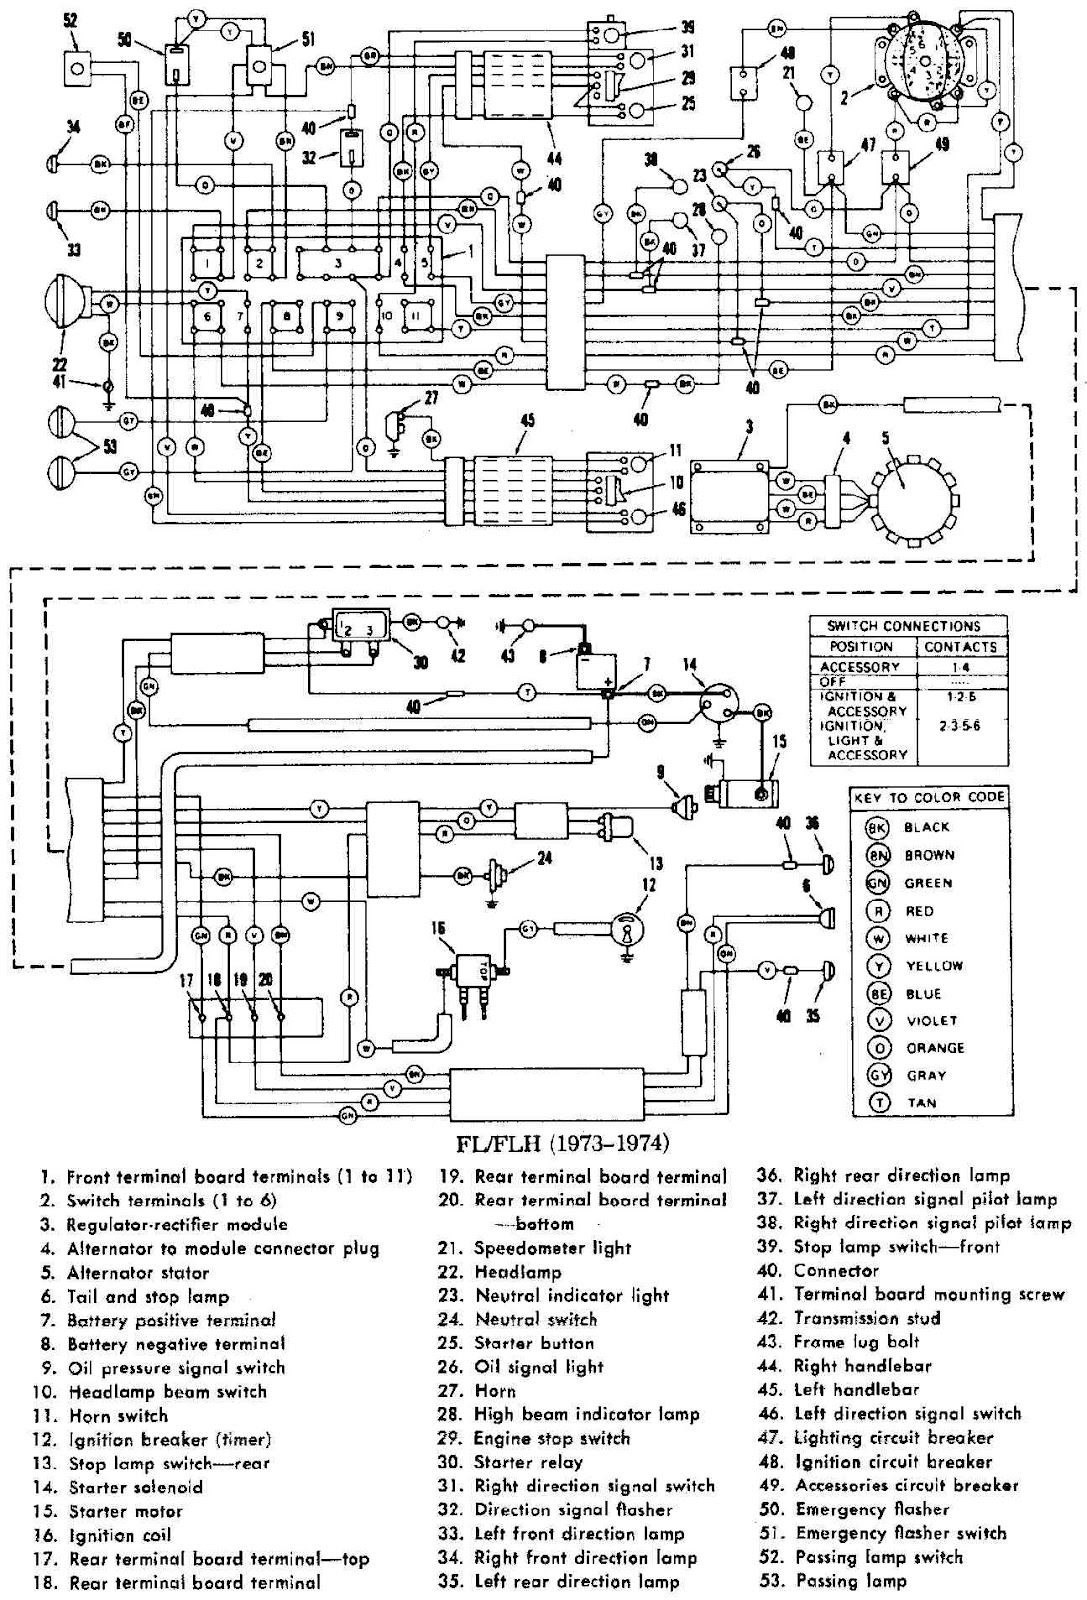 shovelhead chopper wiring diagram for ez go gas golf cart v twin forum harley davidson forums